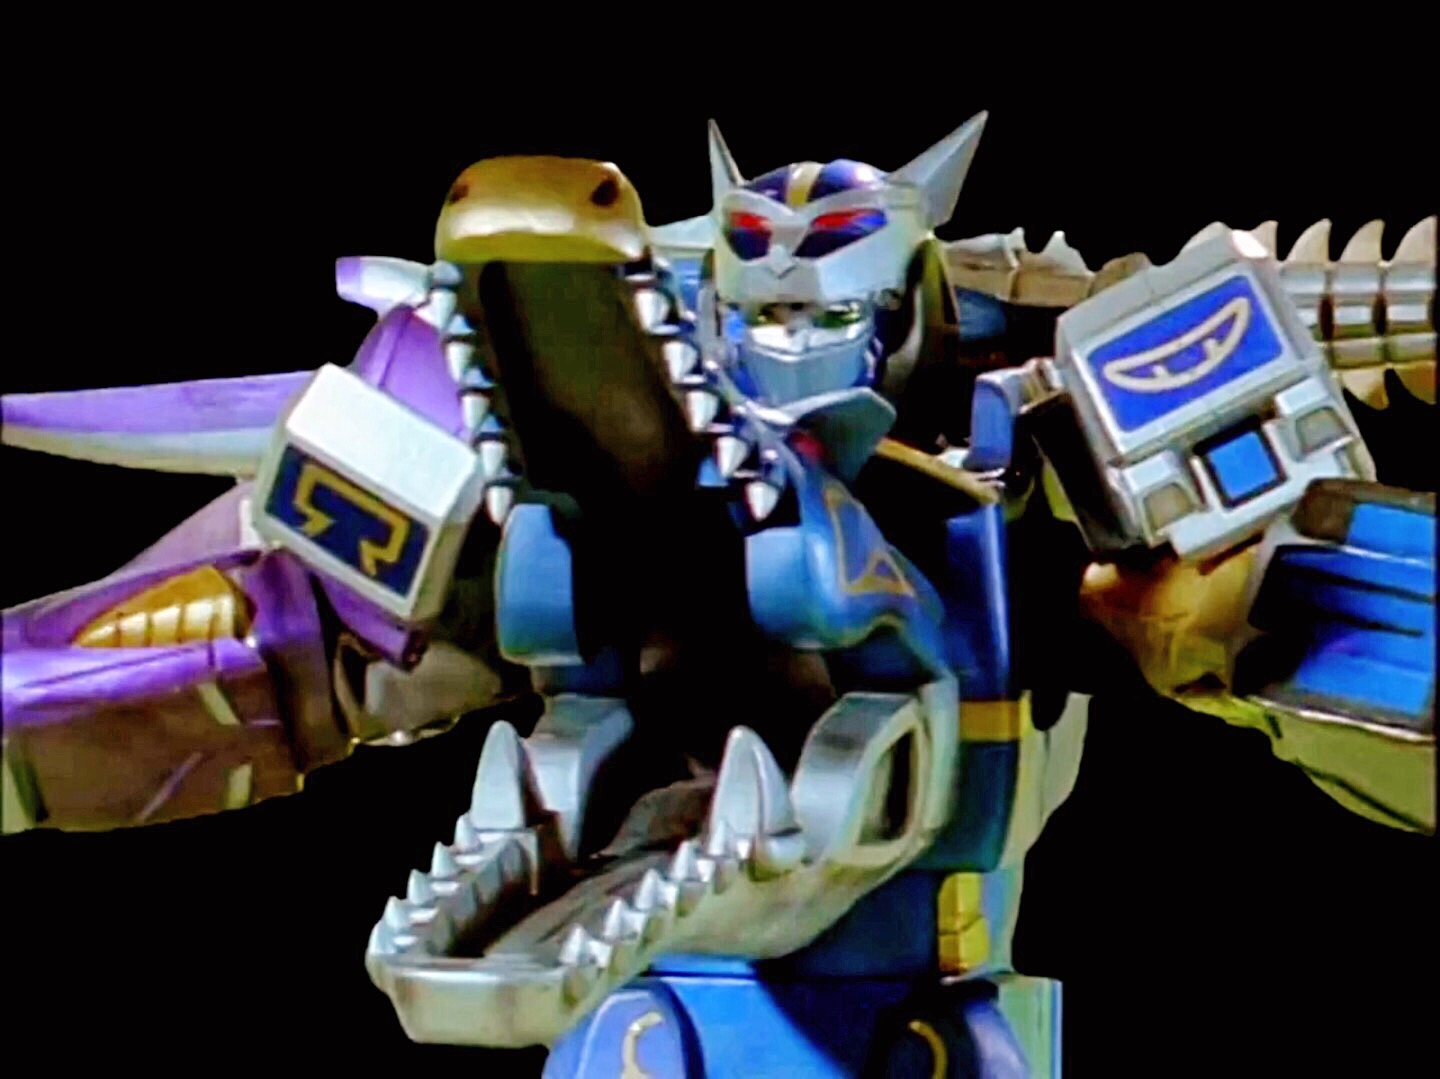 Blue wolf zord - photo#37